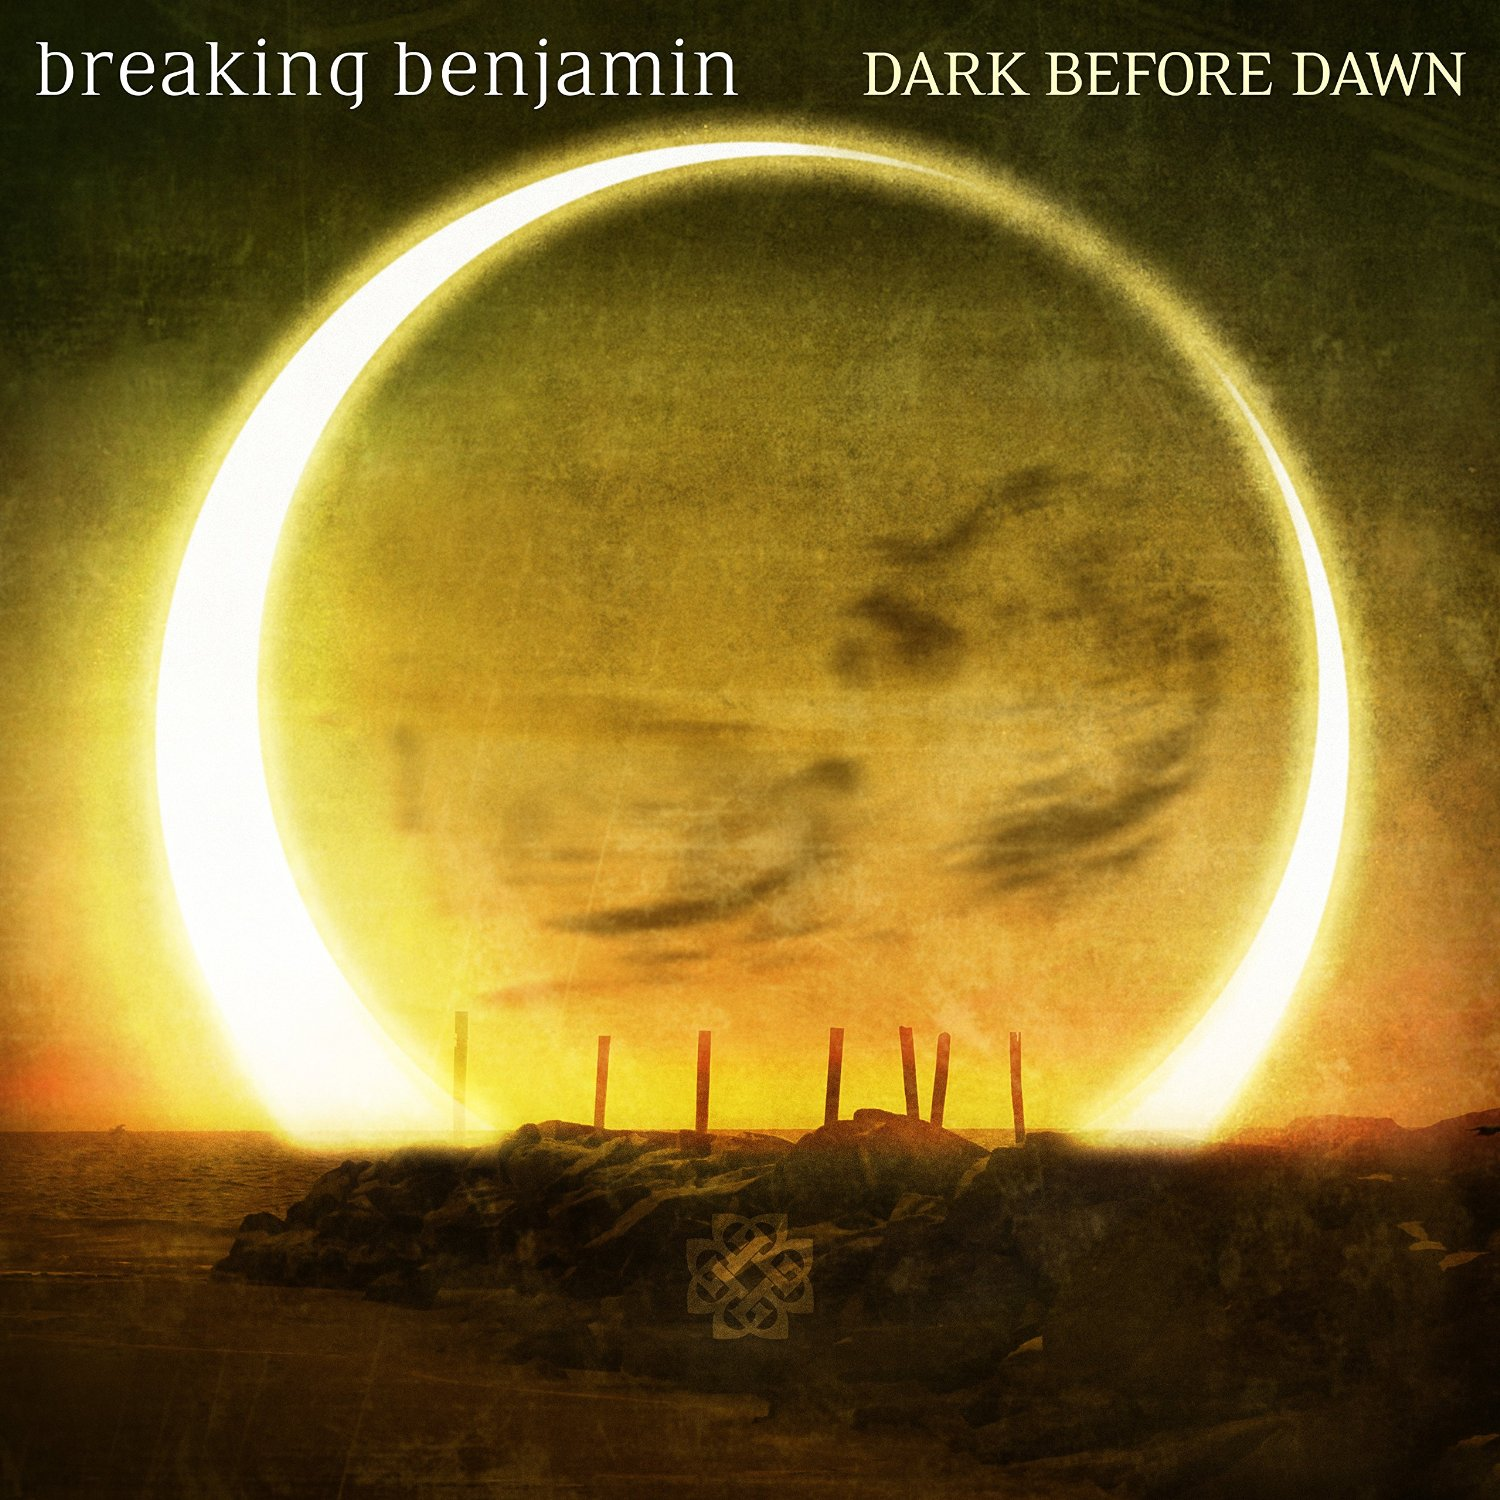 breakingbenjamin darkbeforedawn - Win an iPad Mini from Breaking Benjamin!